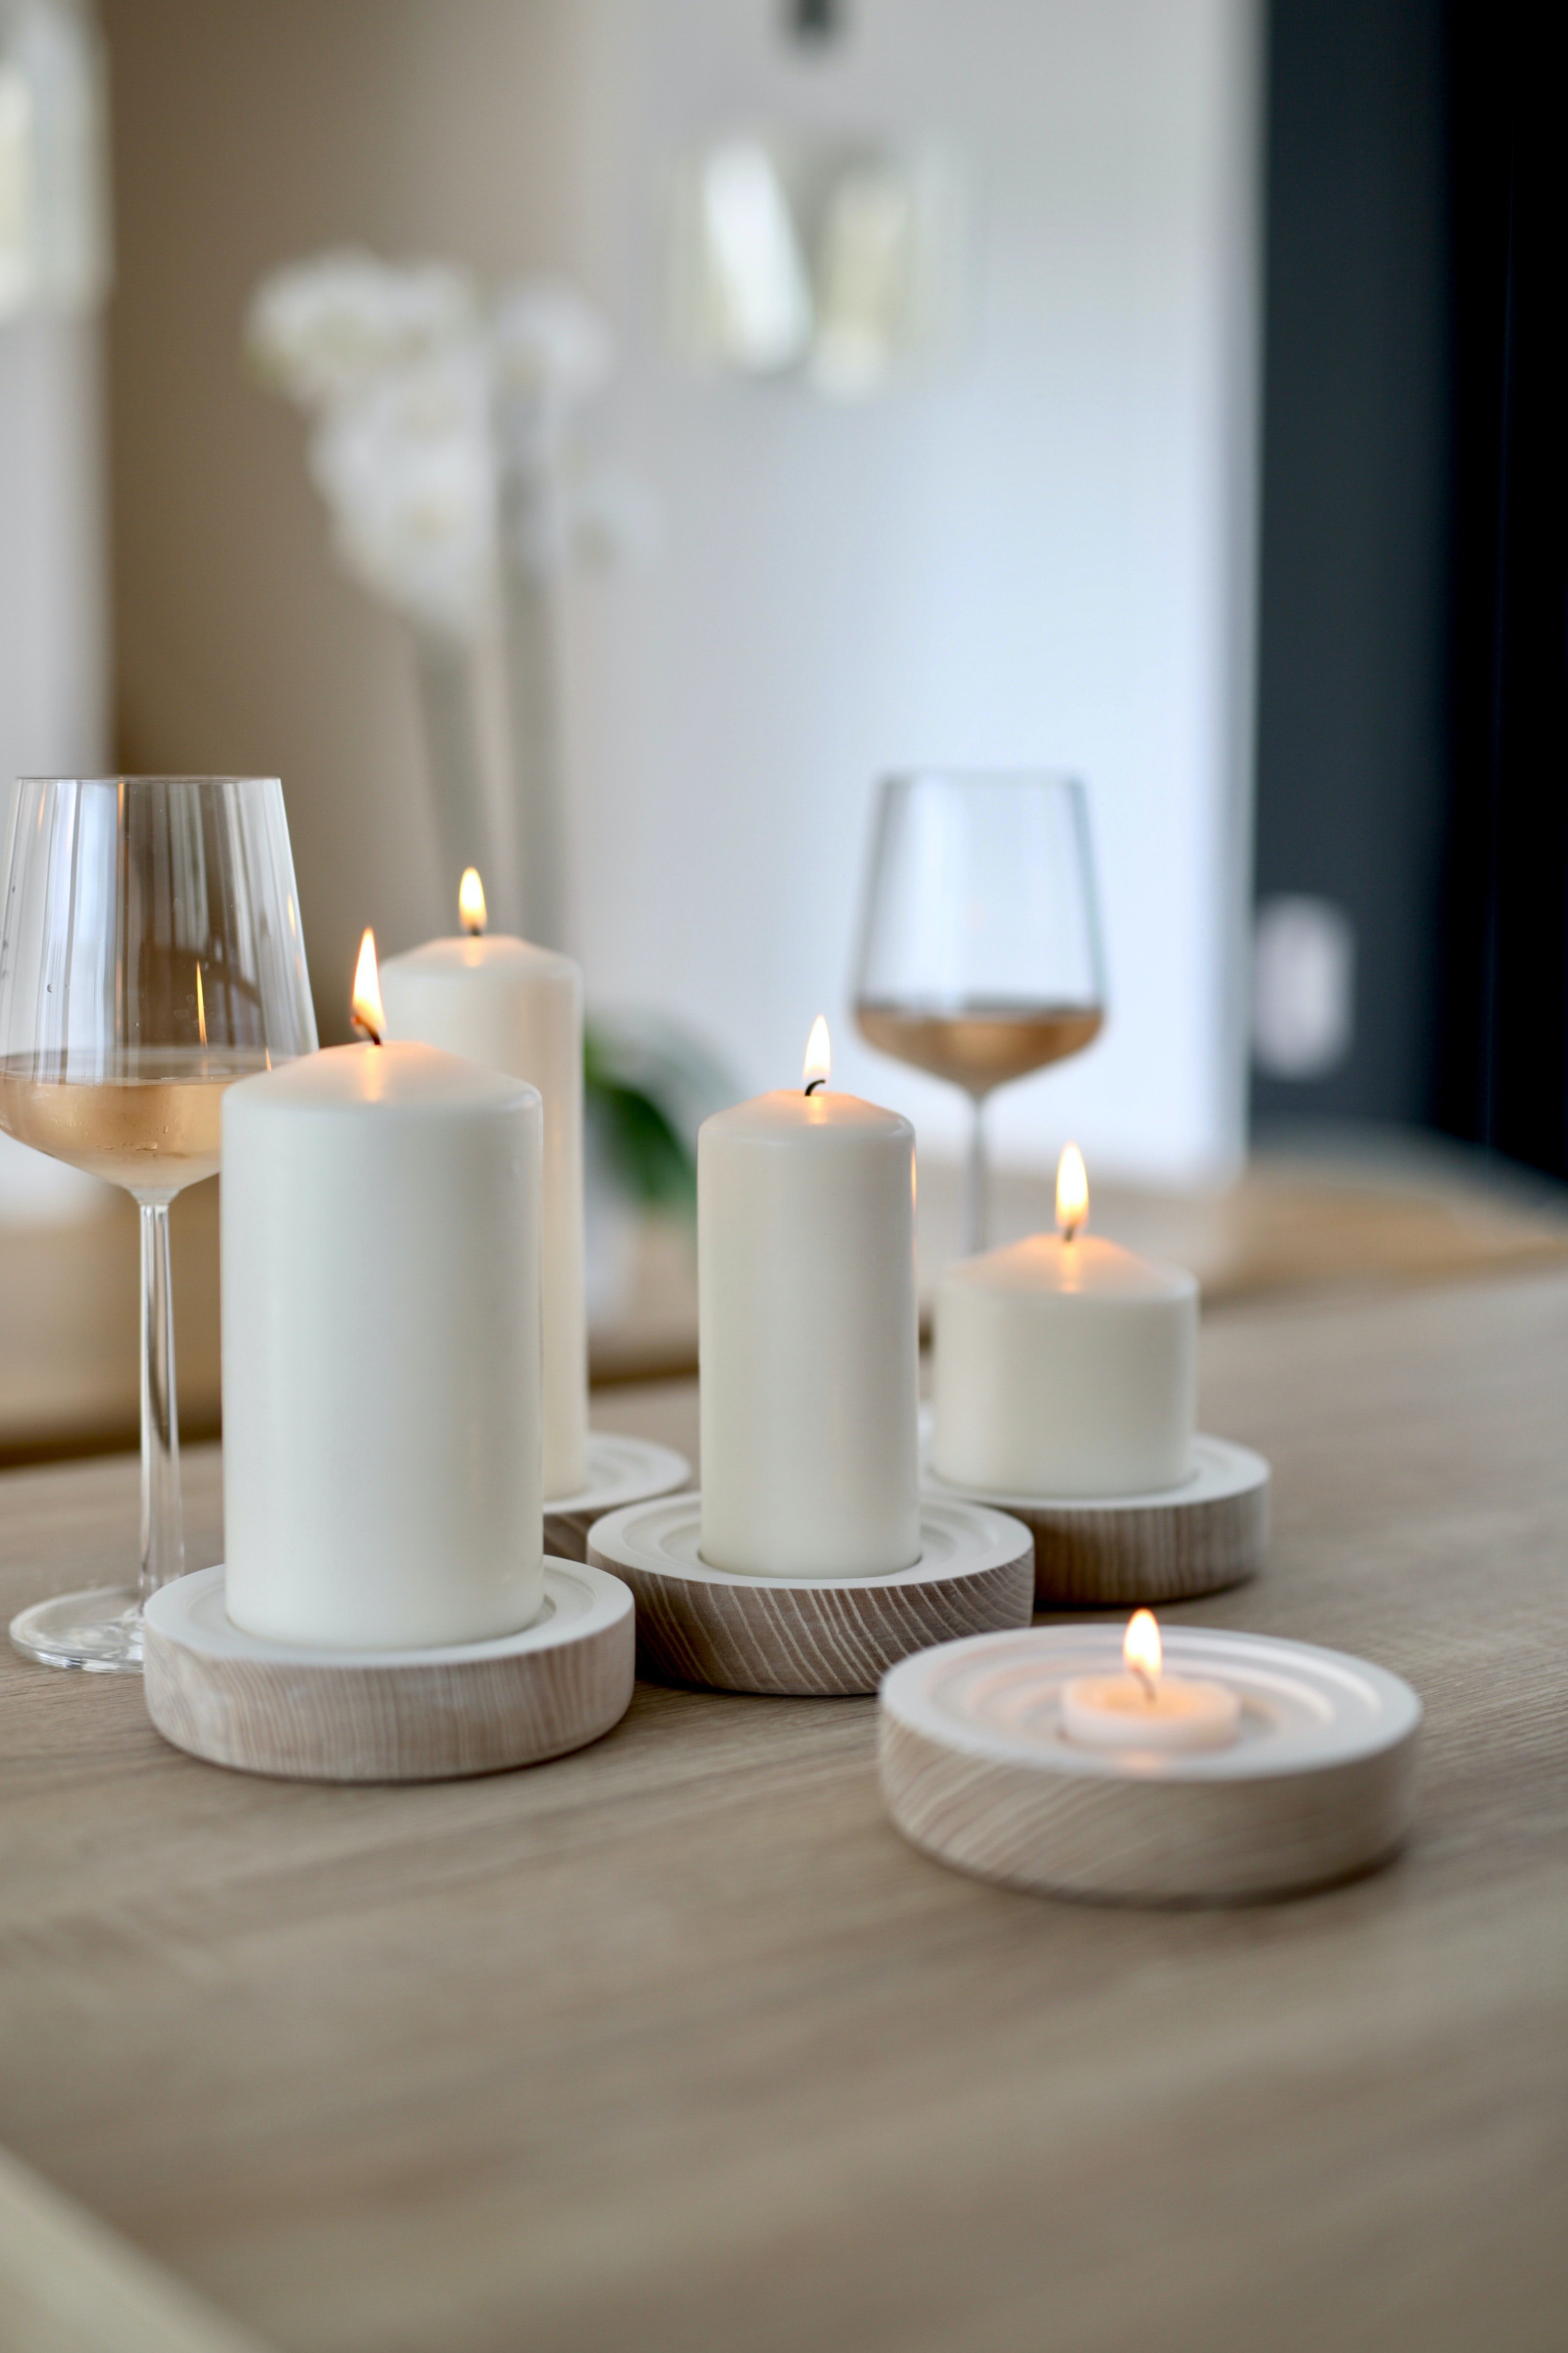 romantic table setting with wine glasses and candles